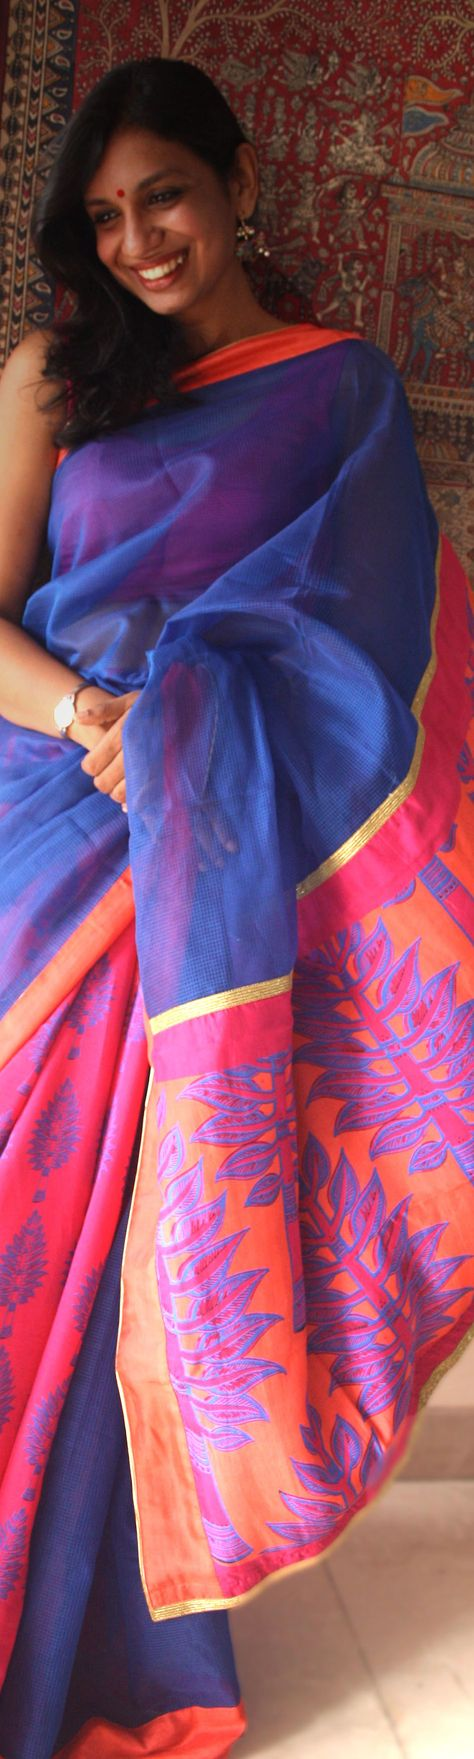 Pretty in a gorgeous Chanderi? Stunning saree from the very talented UDD team via